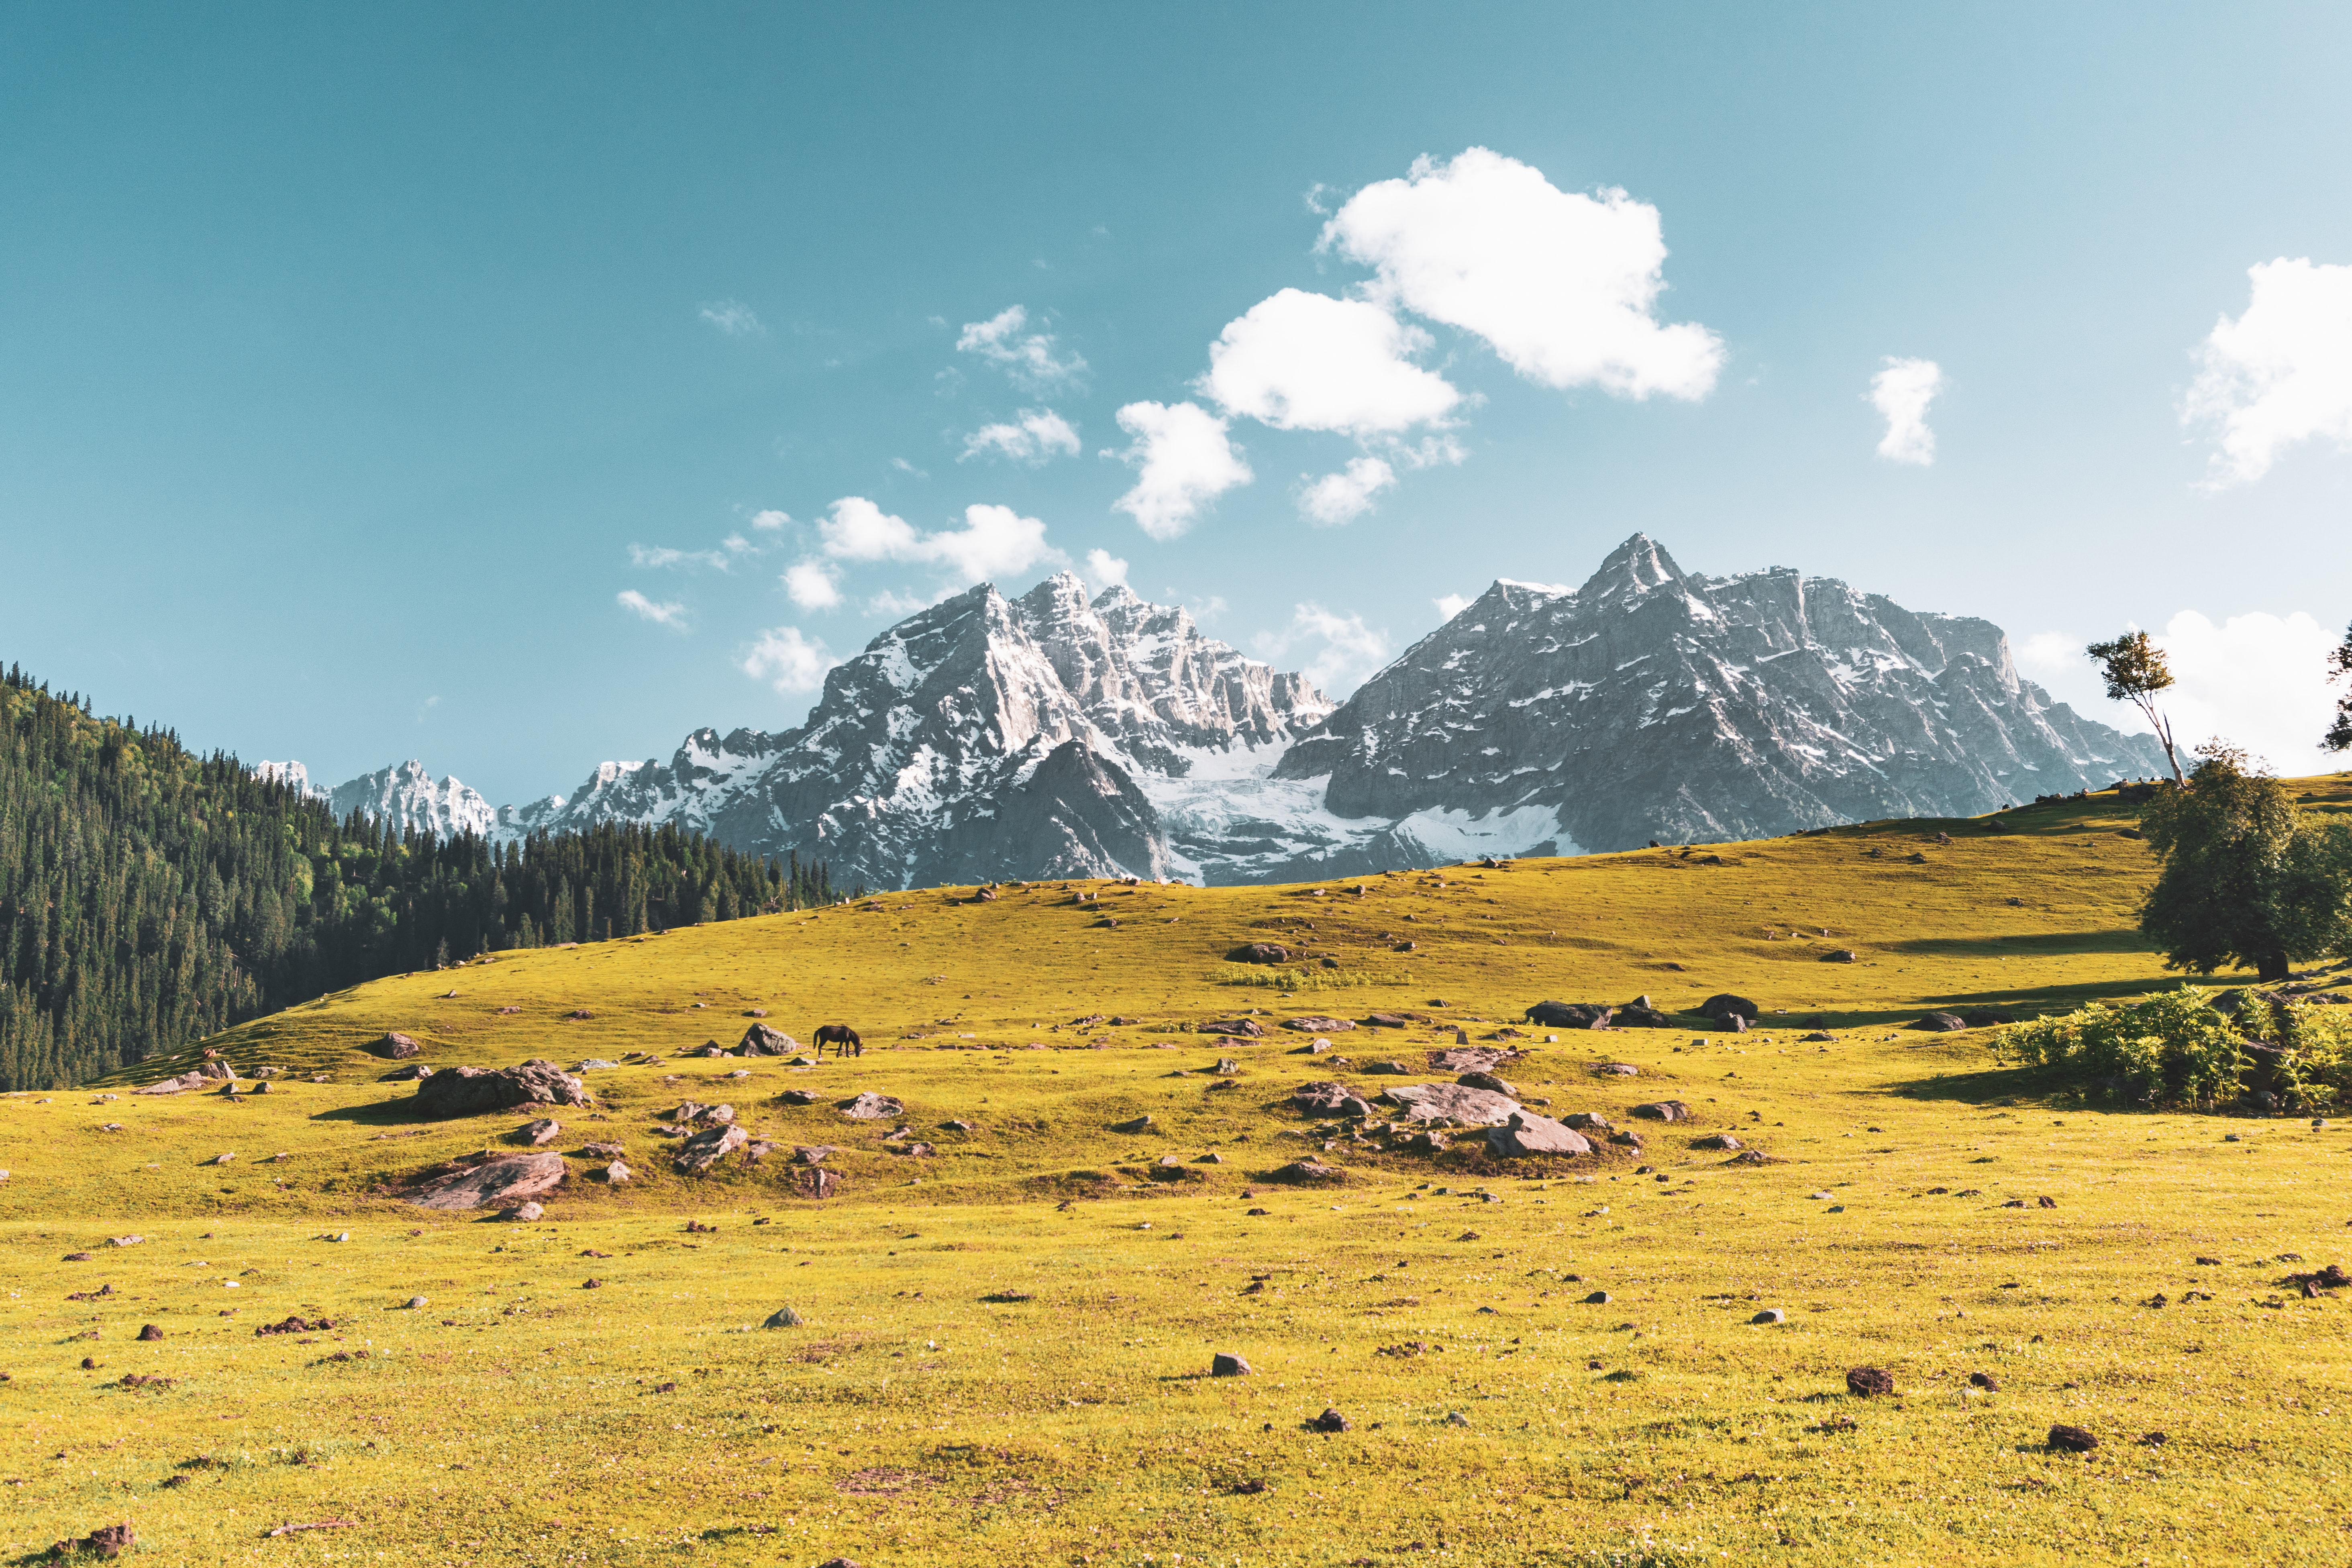 landscape photography of yellow grass field and mountain